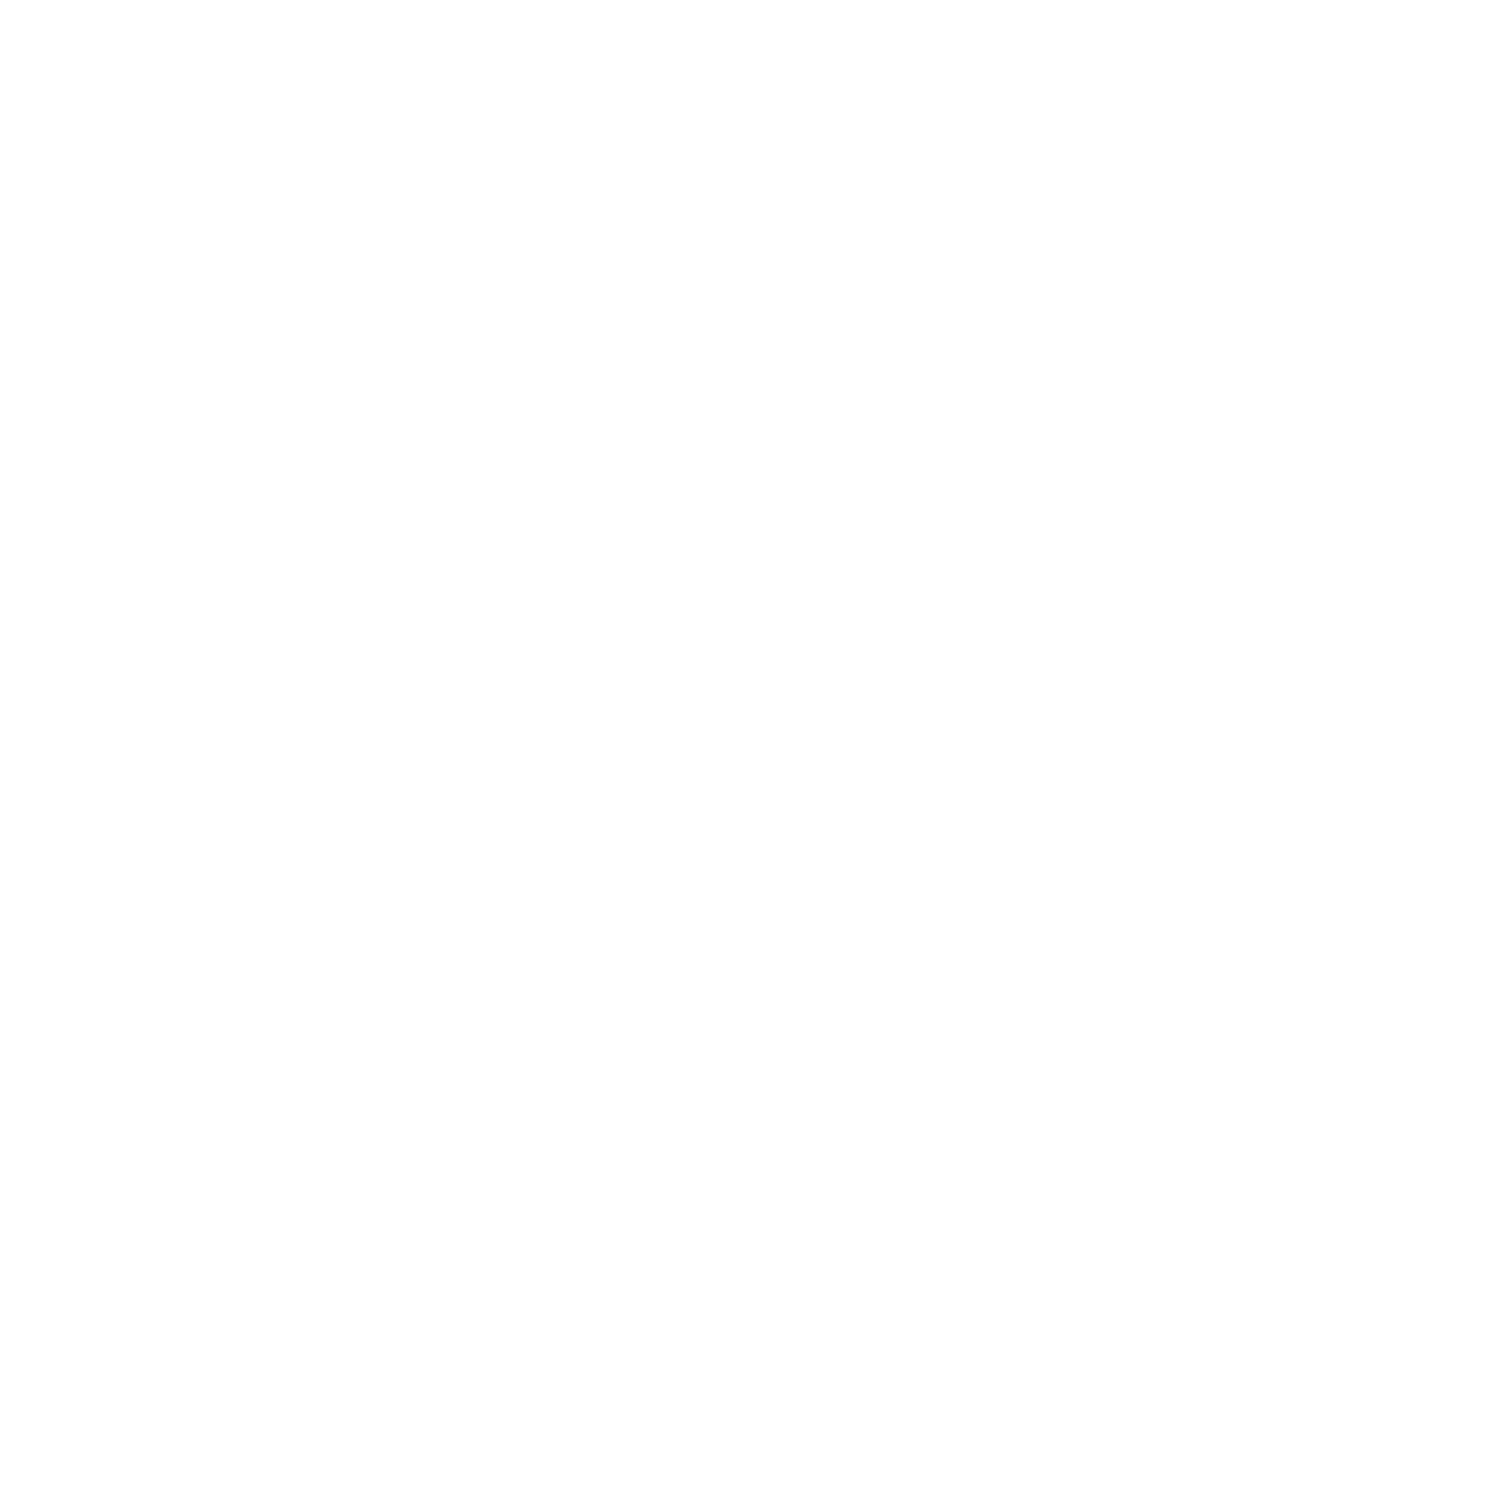 Uncle Eddie's Public House